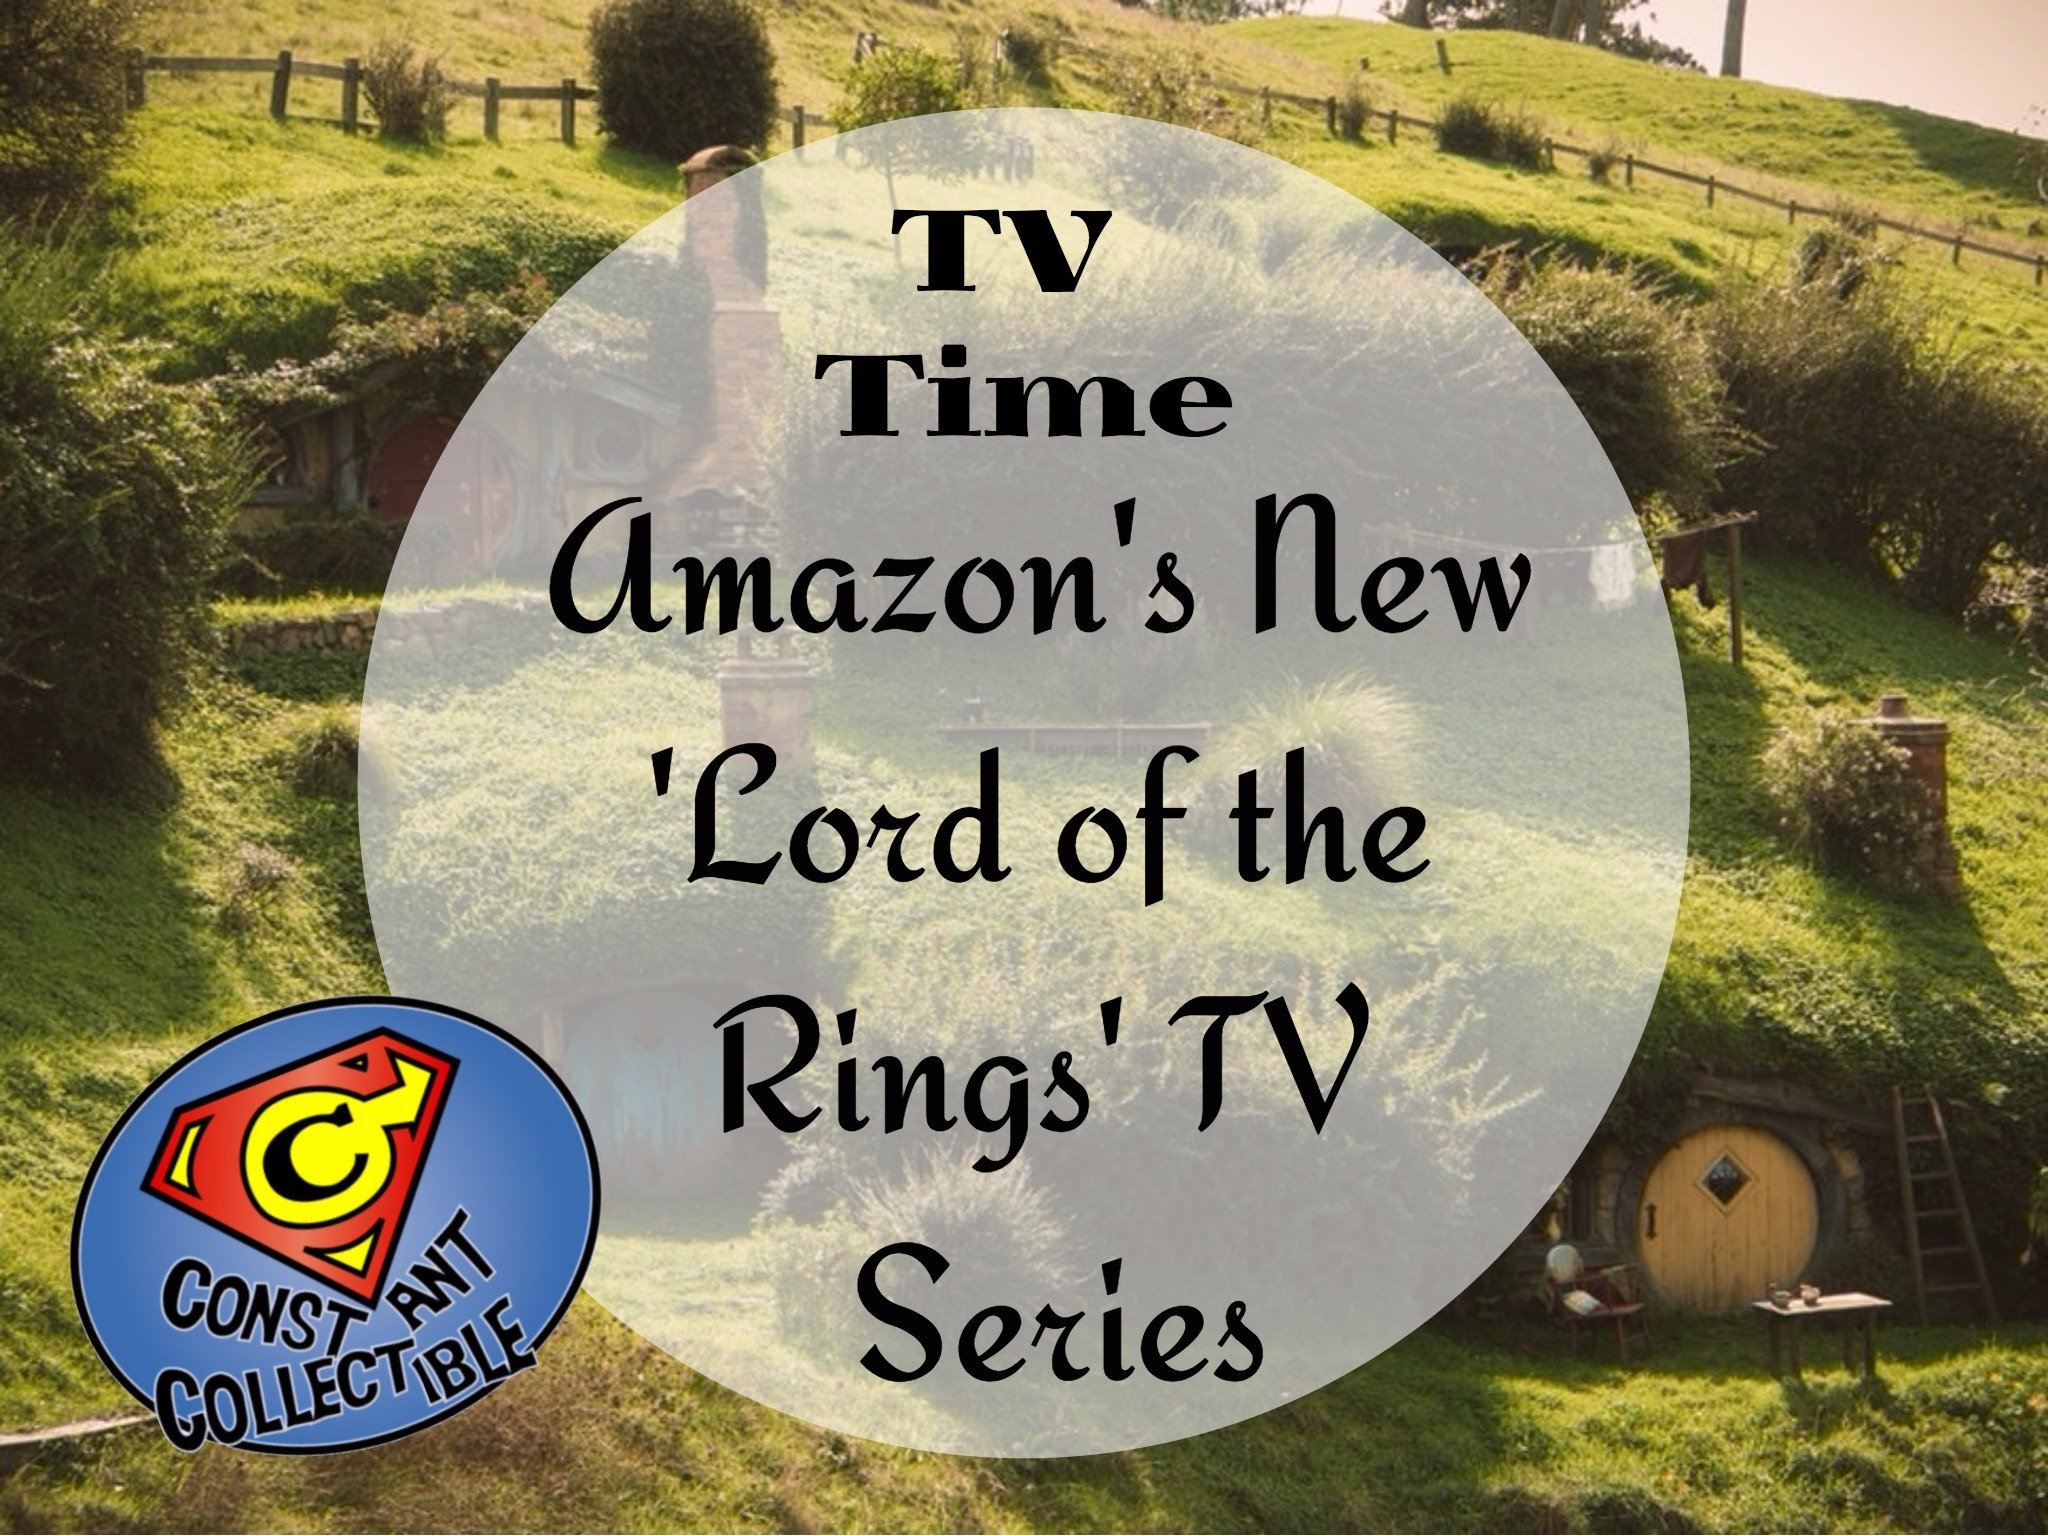 TV Time_ Amazons New Lord of the Rings TV series - Constant Collectible.jpg